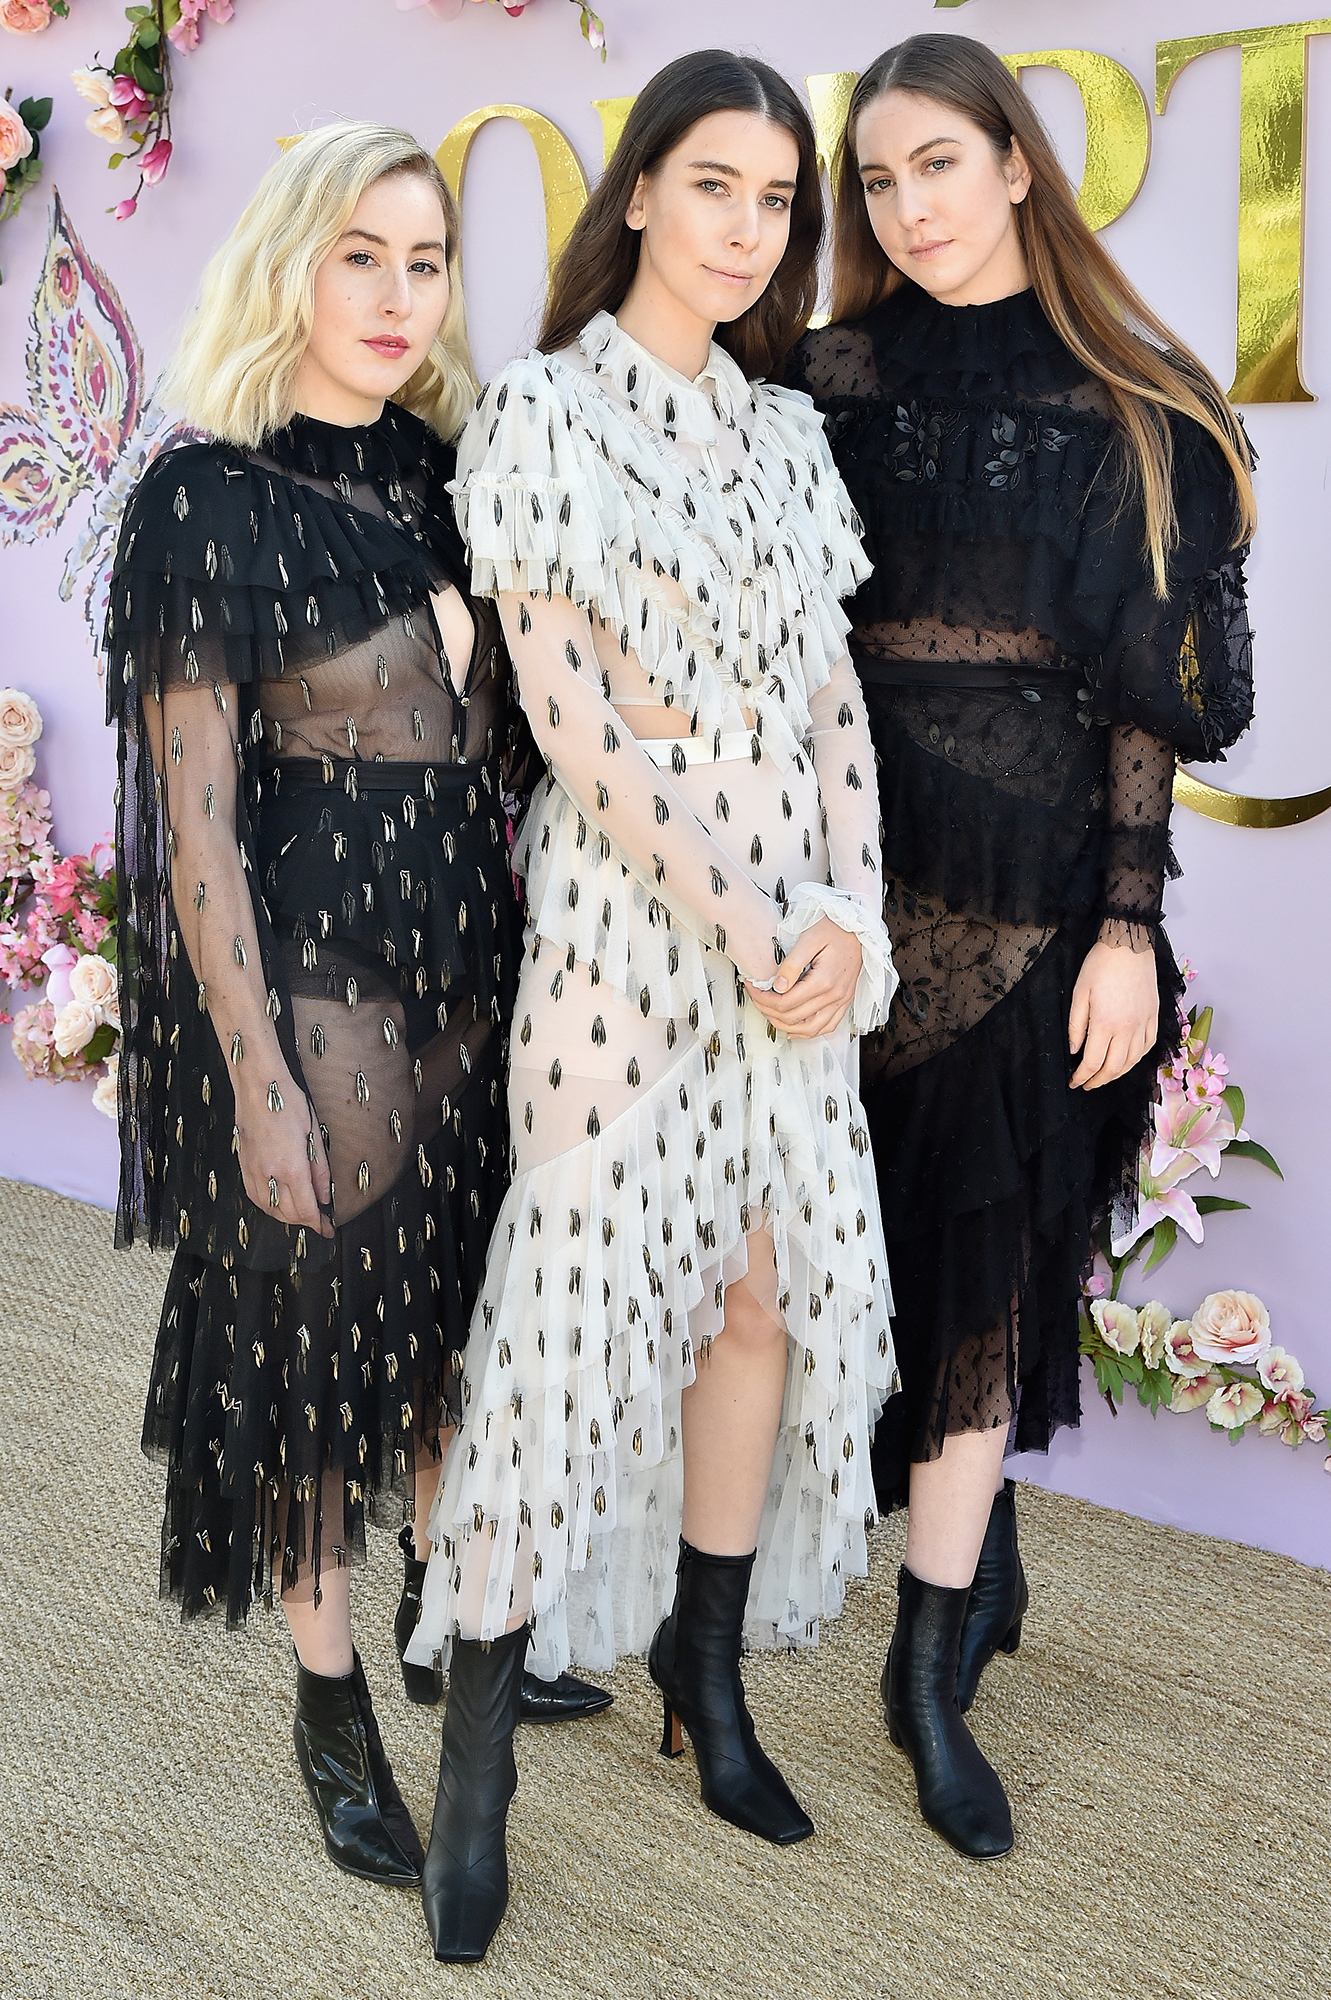 Hollywood's Freshest Faces Were Front Row at the Rodarte Show - The sister act kept things color coordinated in frilly black and white frocks.